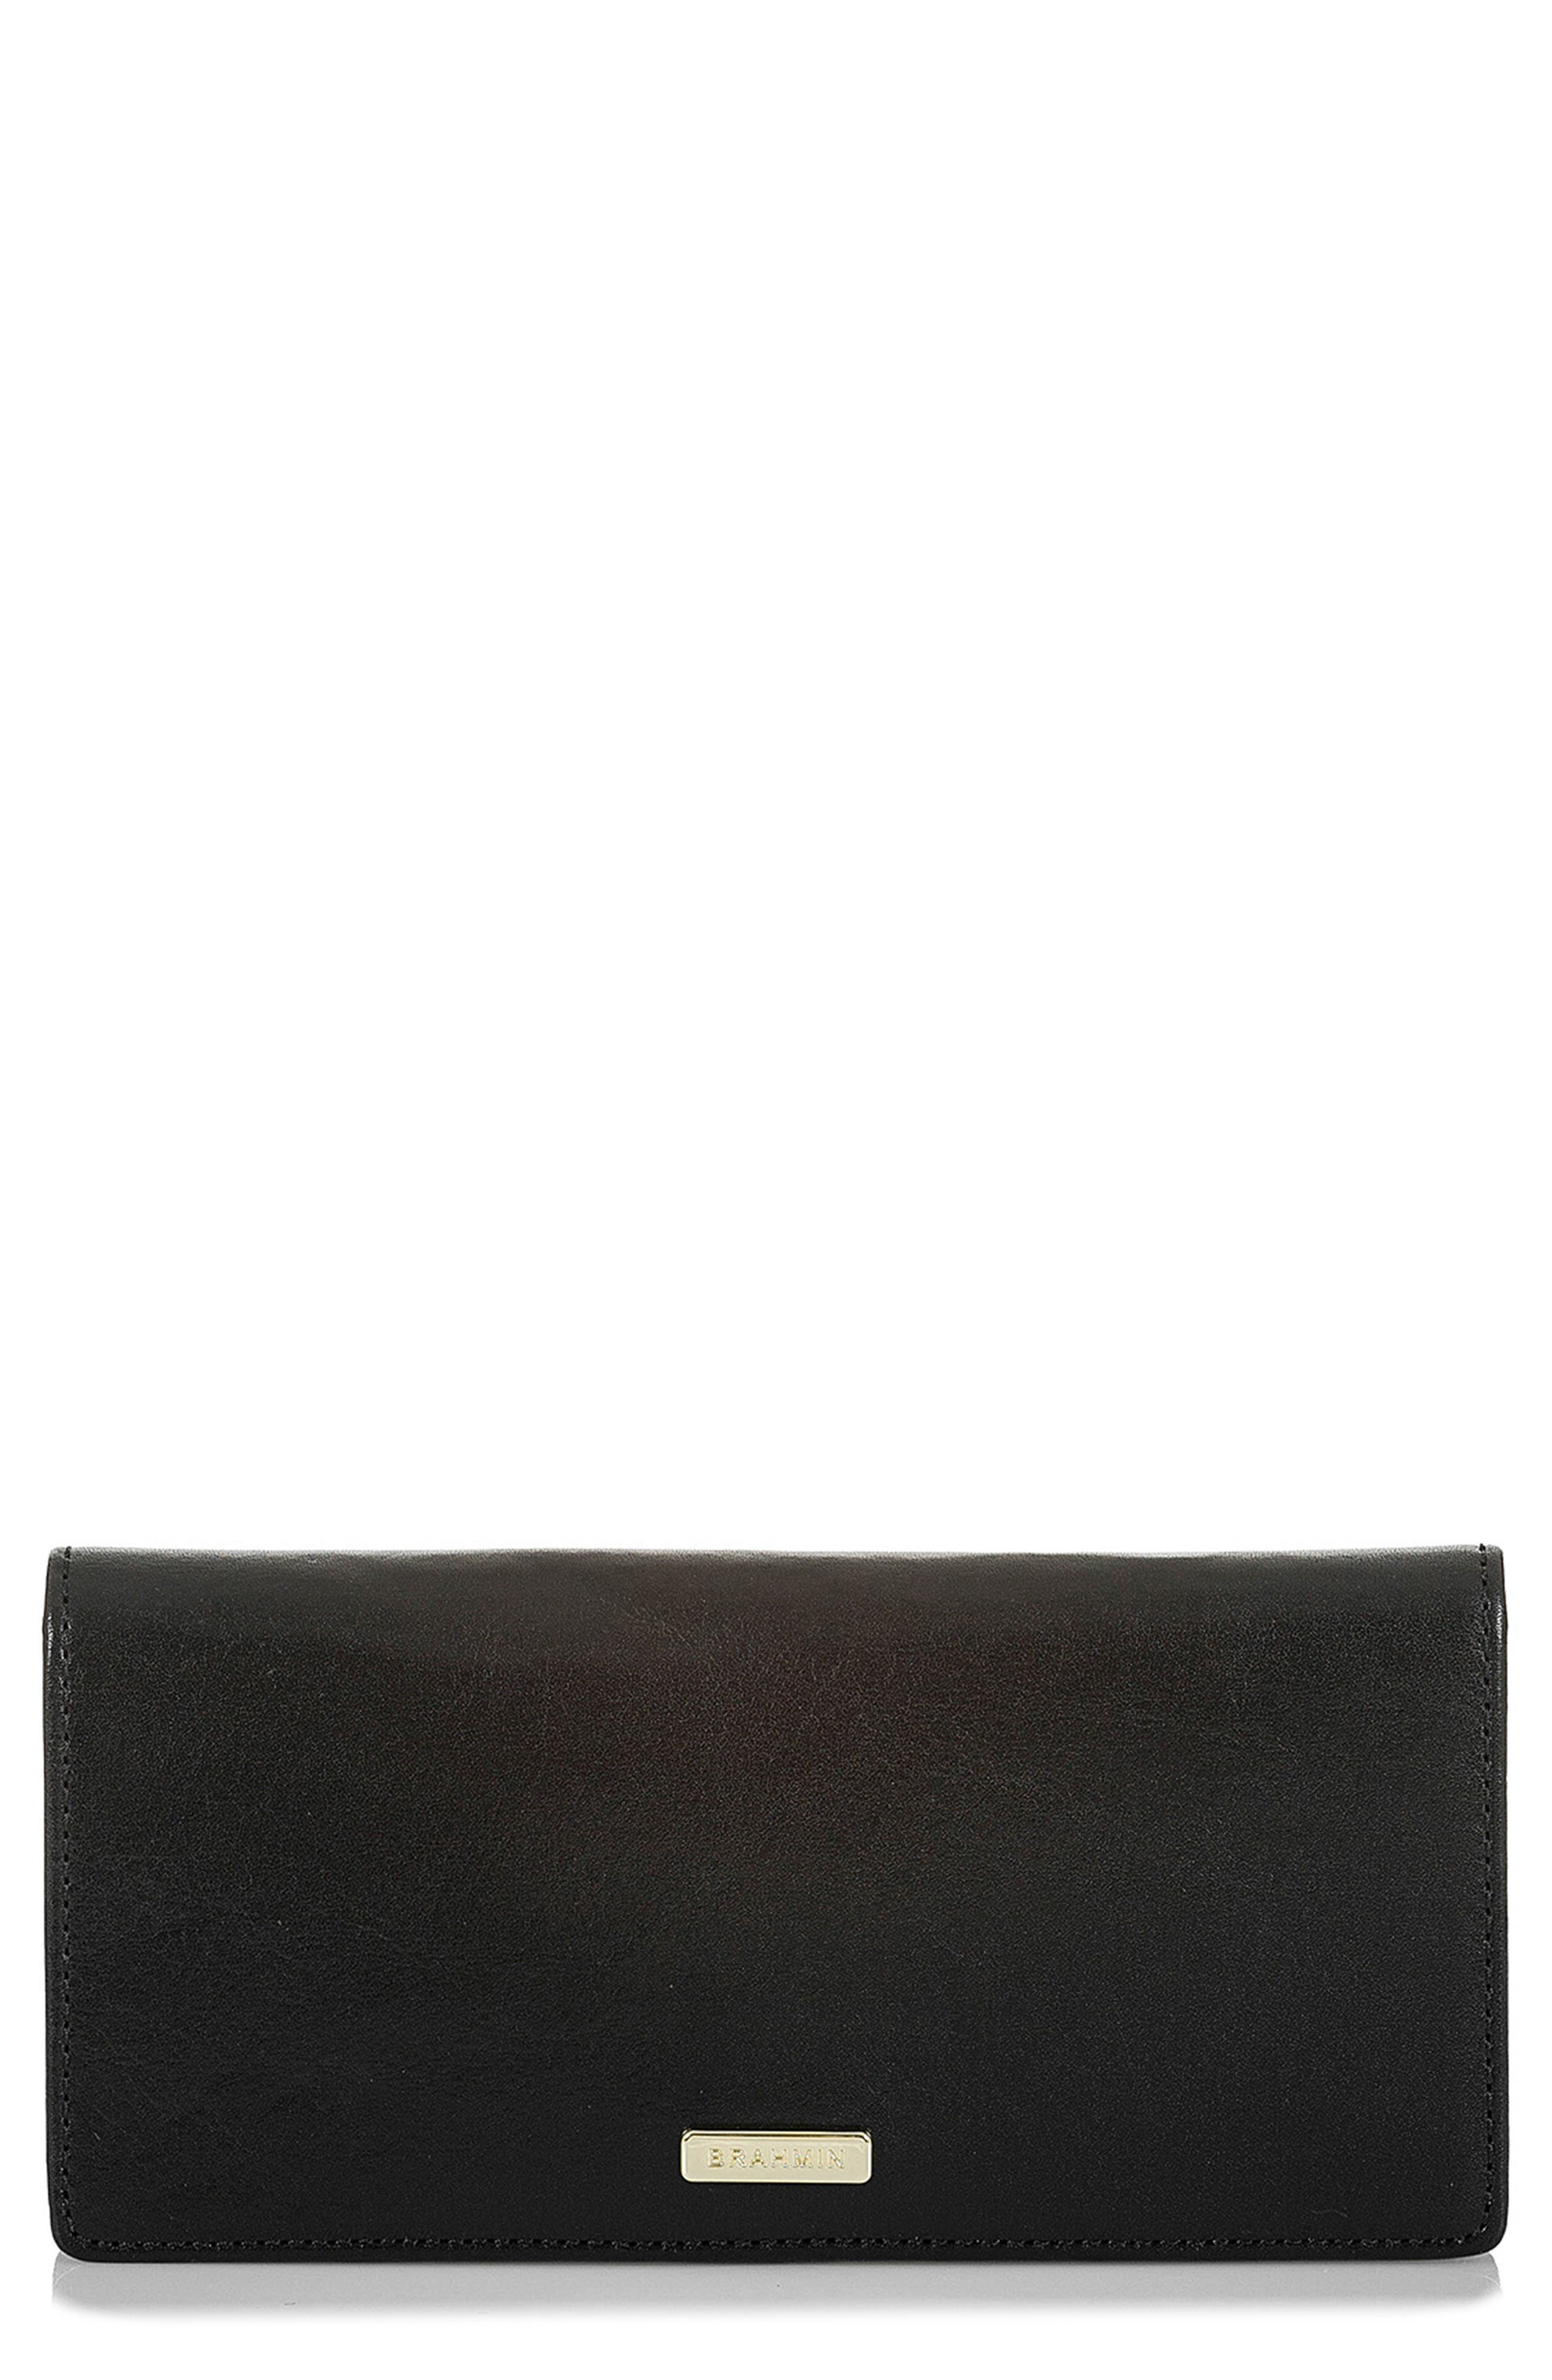 BRAHMIN, Ady Leather Wallet, Main thumbnail 1, color, 001